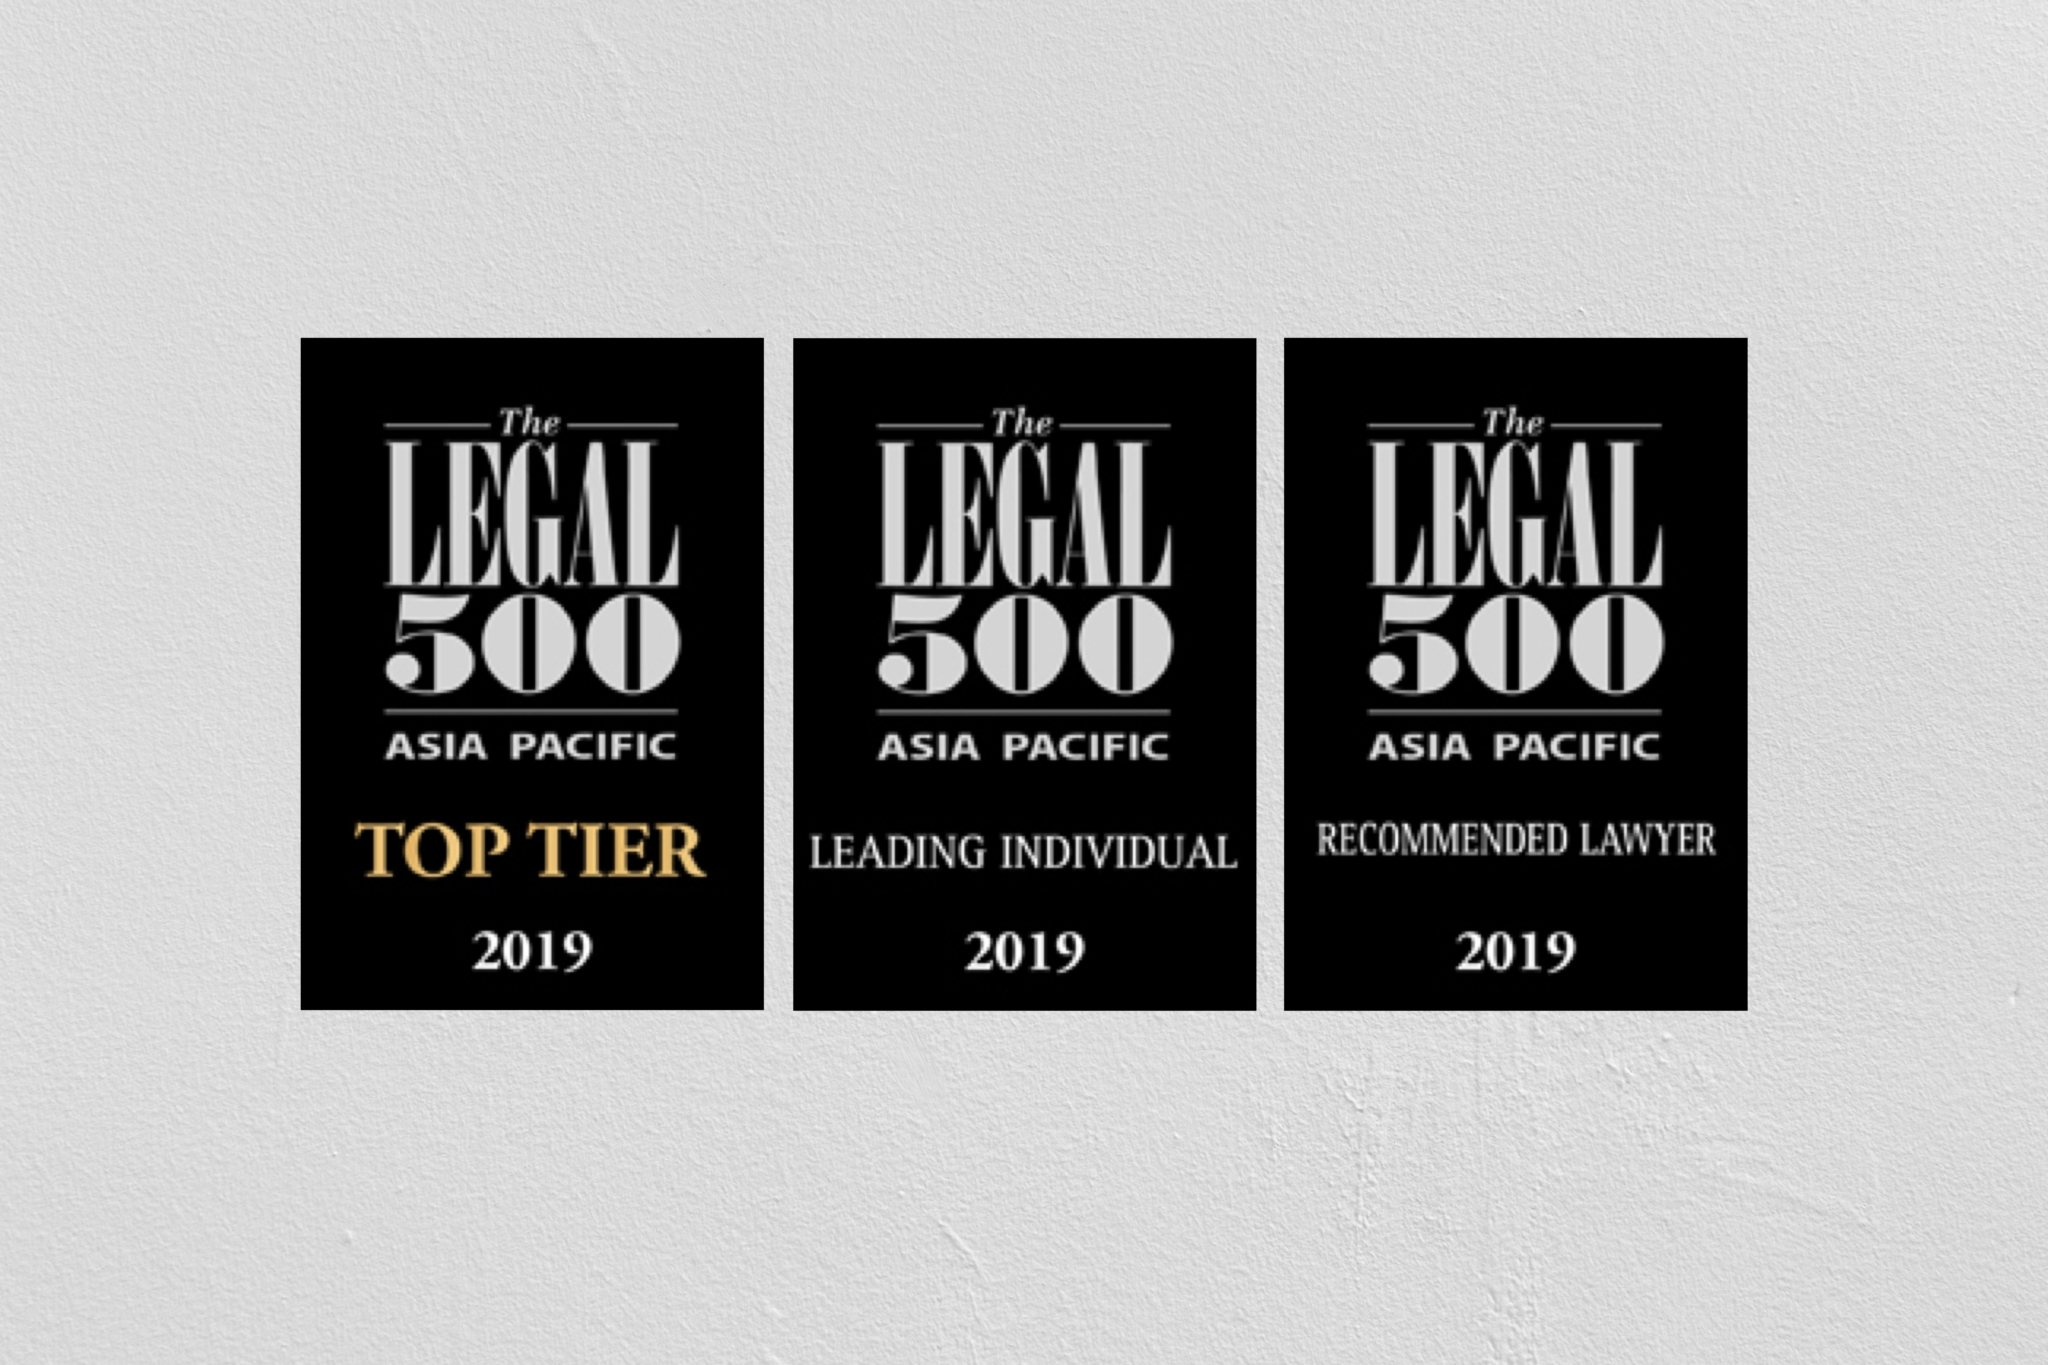 Top Tier – The LEGAL 500 Rankings, 2019